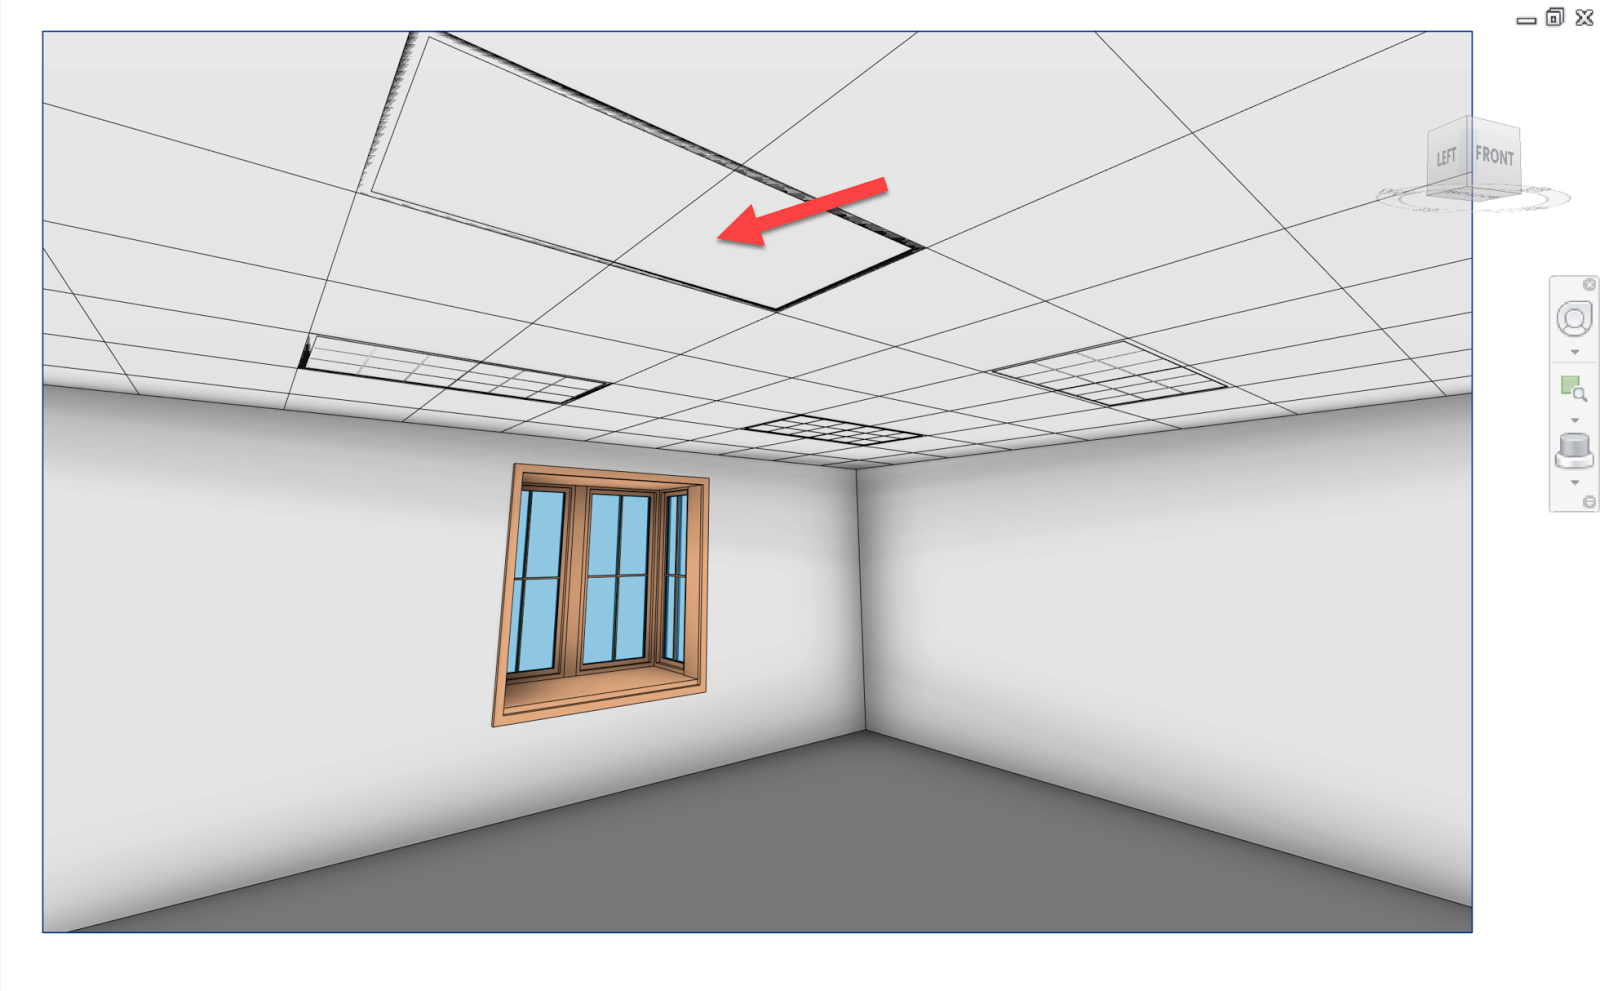 Here is a 3d view in revit showing the overlapping geometry